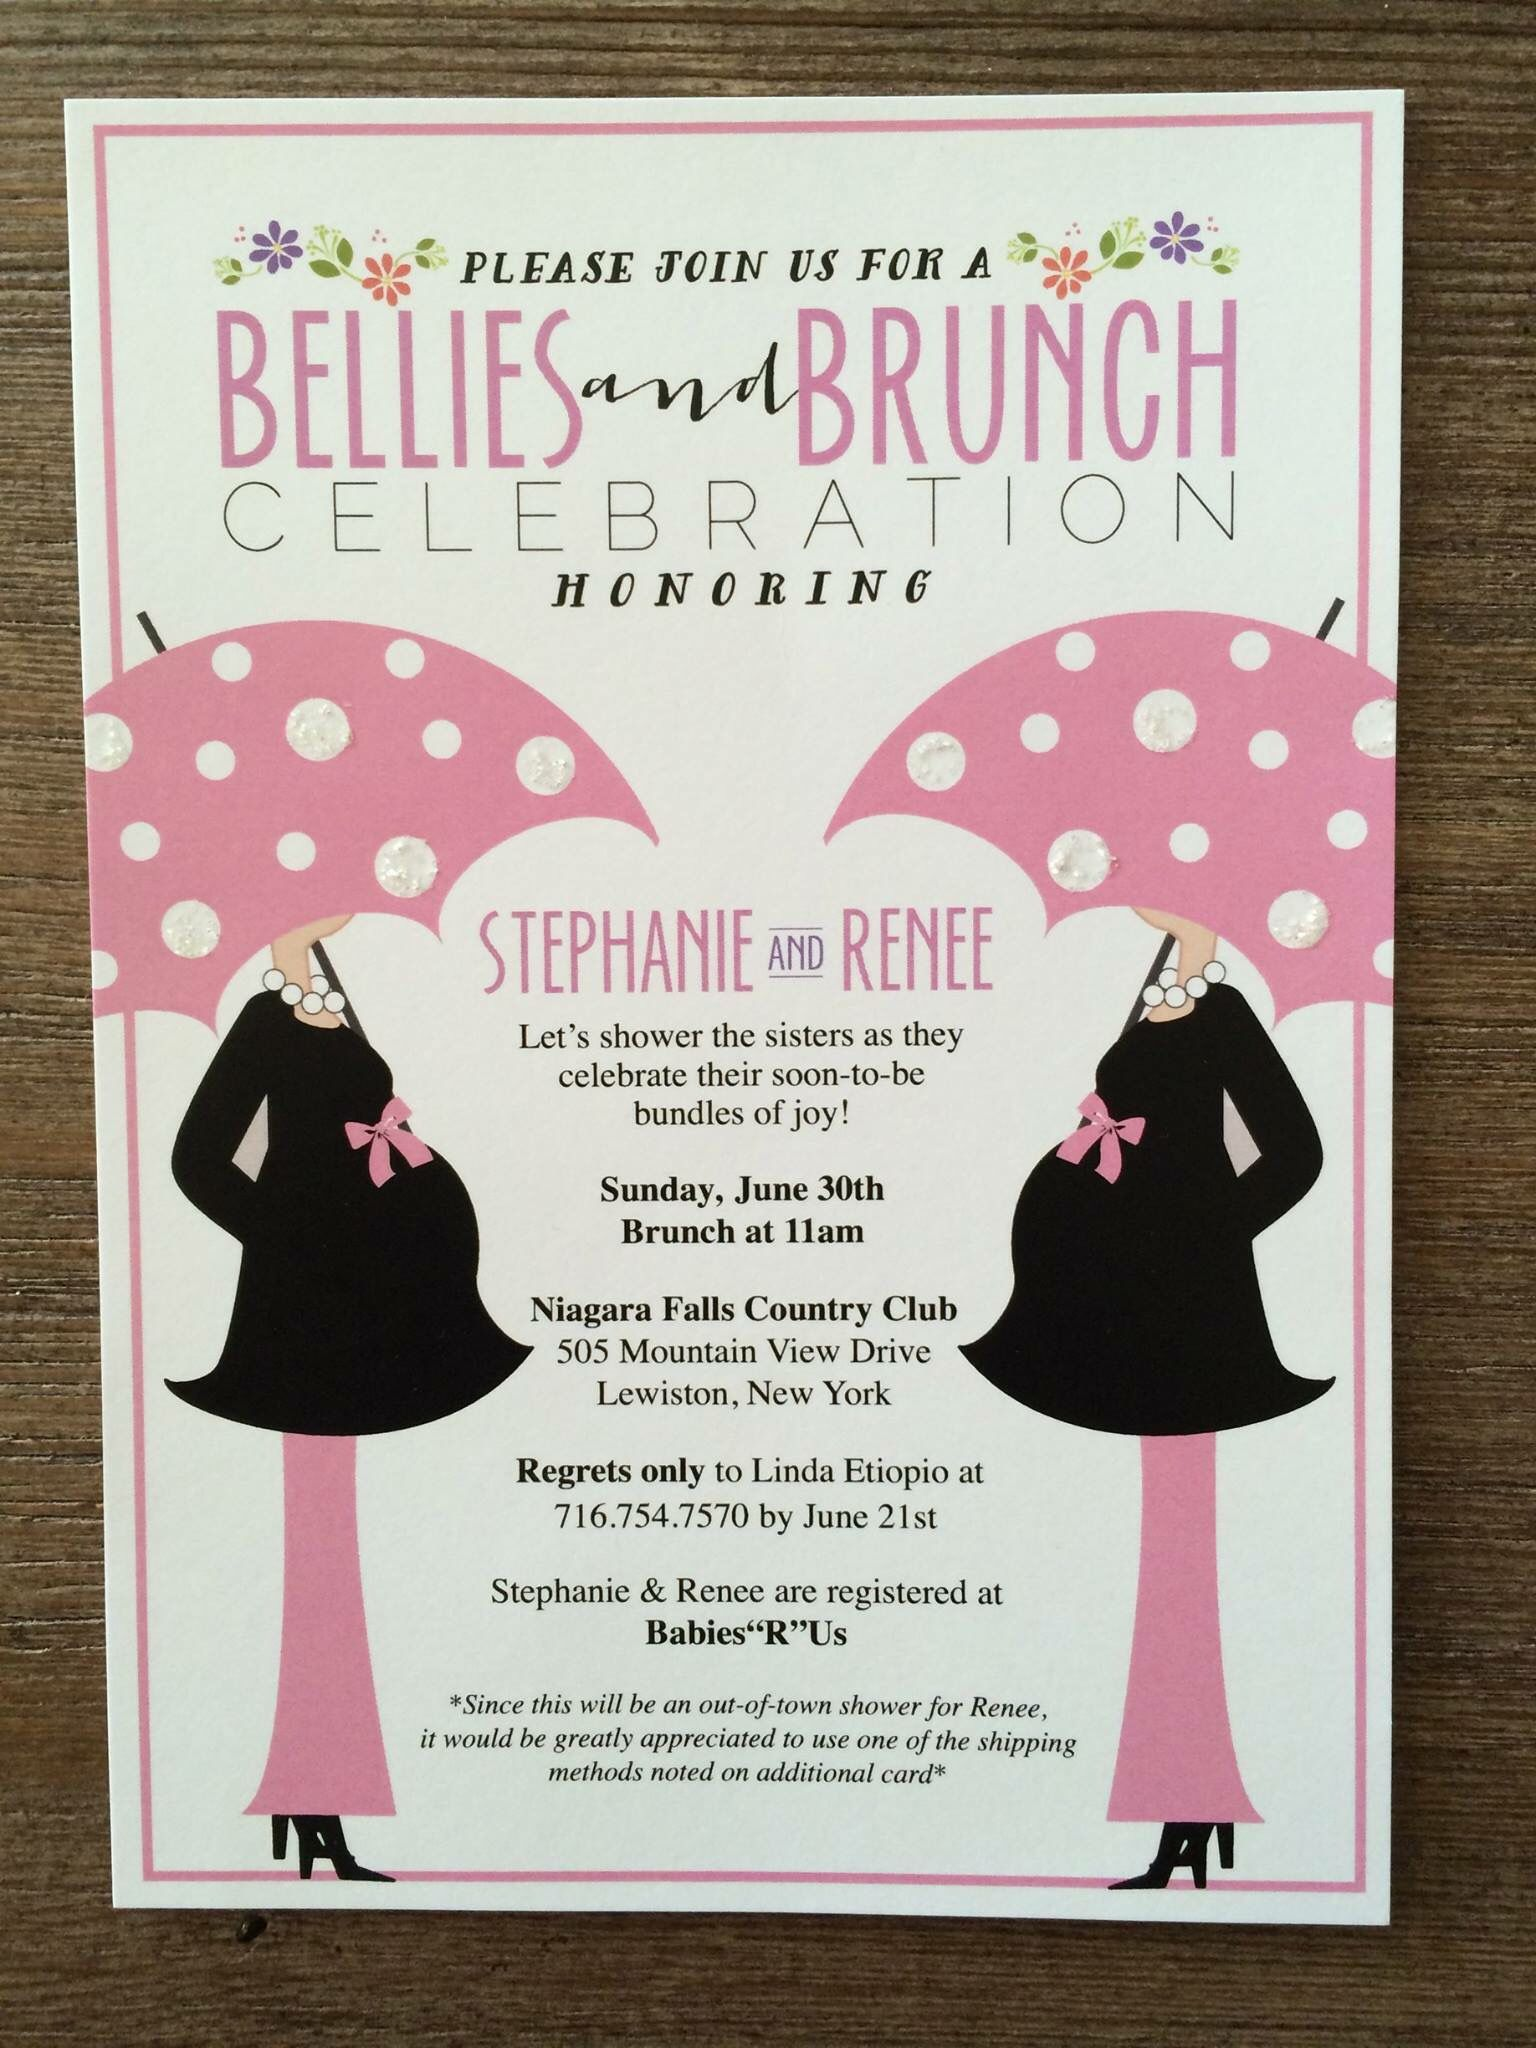 These belliesbrunch invitations are perfect for a joint baby shower these belliesbrunch invitations are perfect for a joint baby shower contact my menuista today babyshowerinvitations newbaby mymenuista filmwisefo